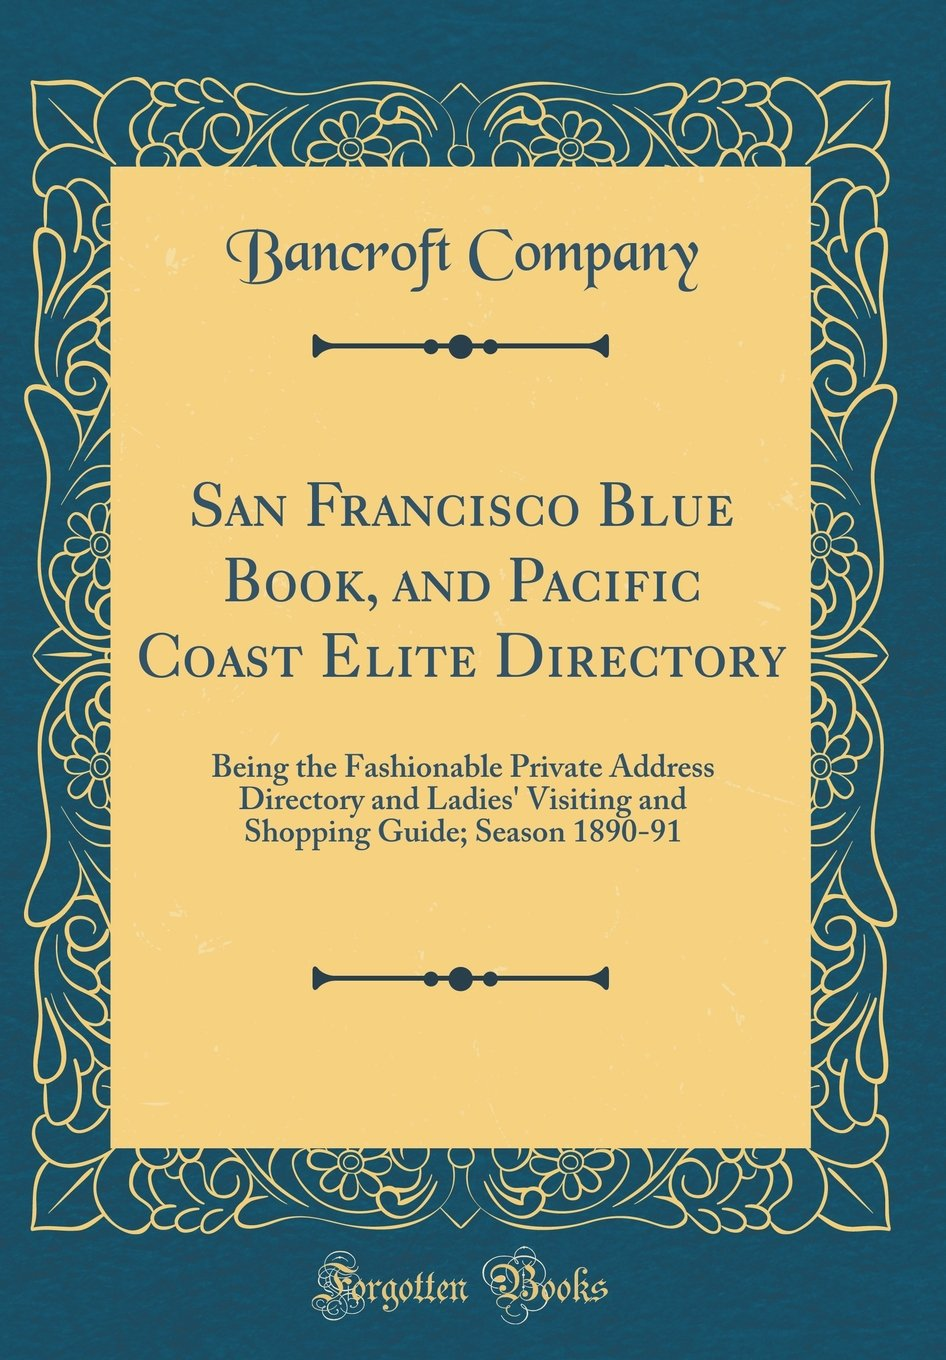 San Francisco Blue Book, and Pacific Coast Elite Directory: Being the Fashionable Private Address Directory and Ladies' Visiting and Shopping Guide; Season 1890-91 (Classic Reprint) PDF